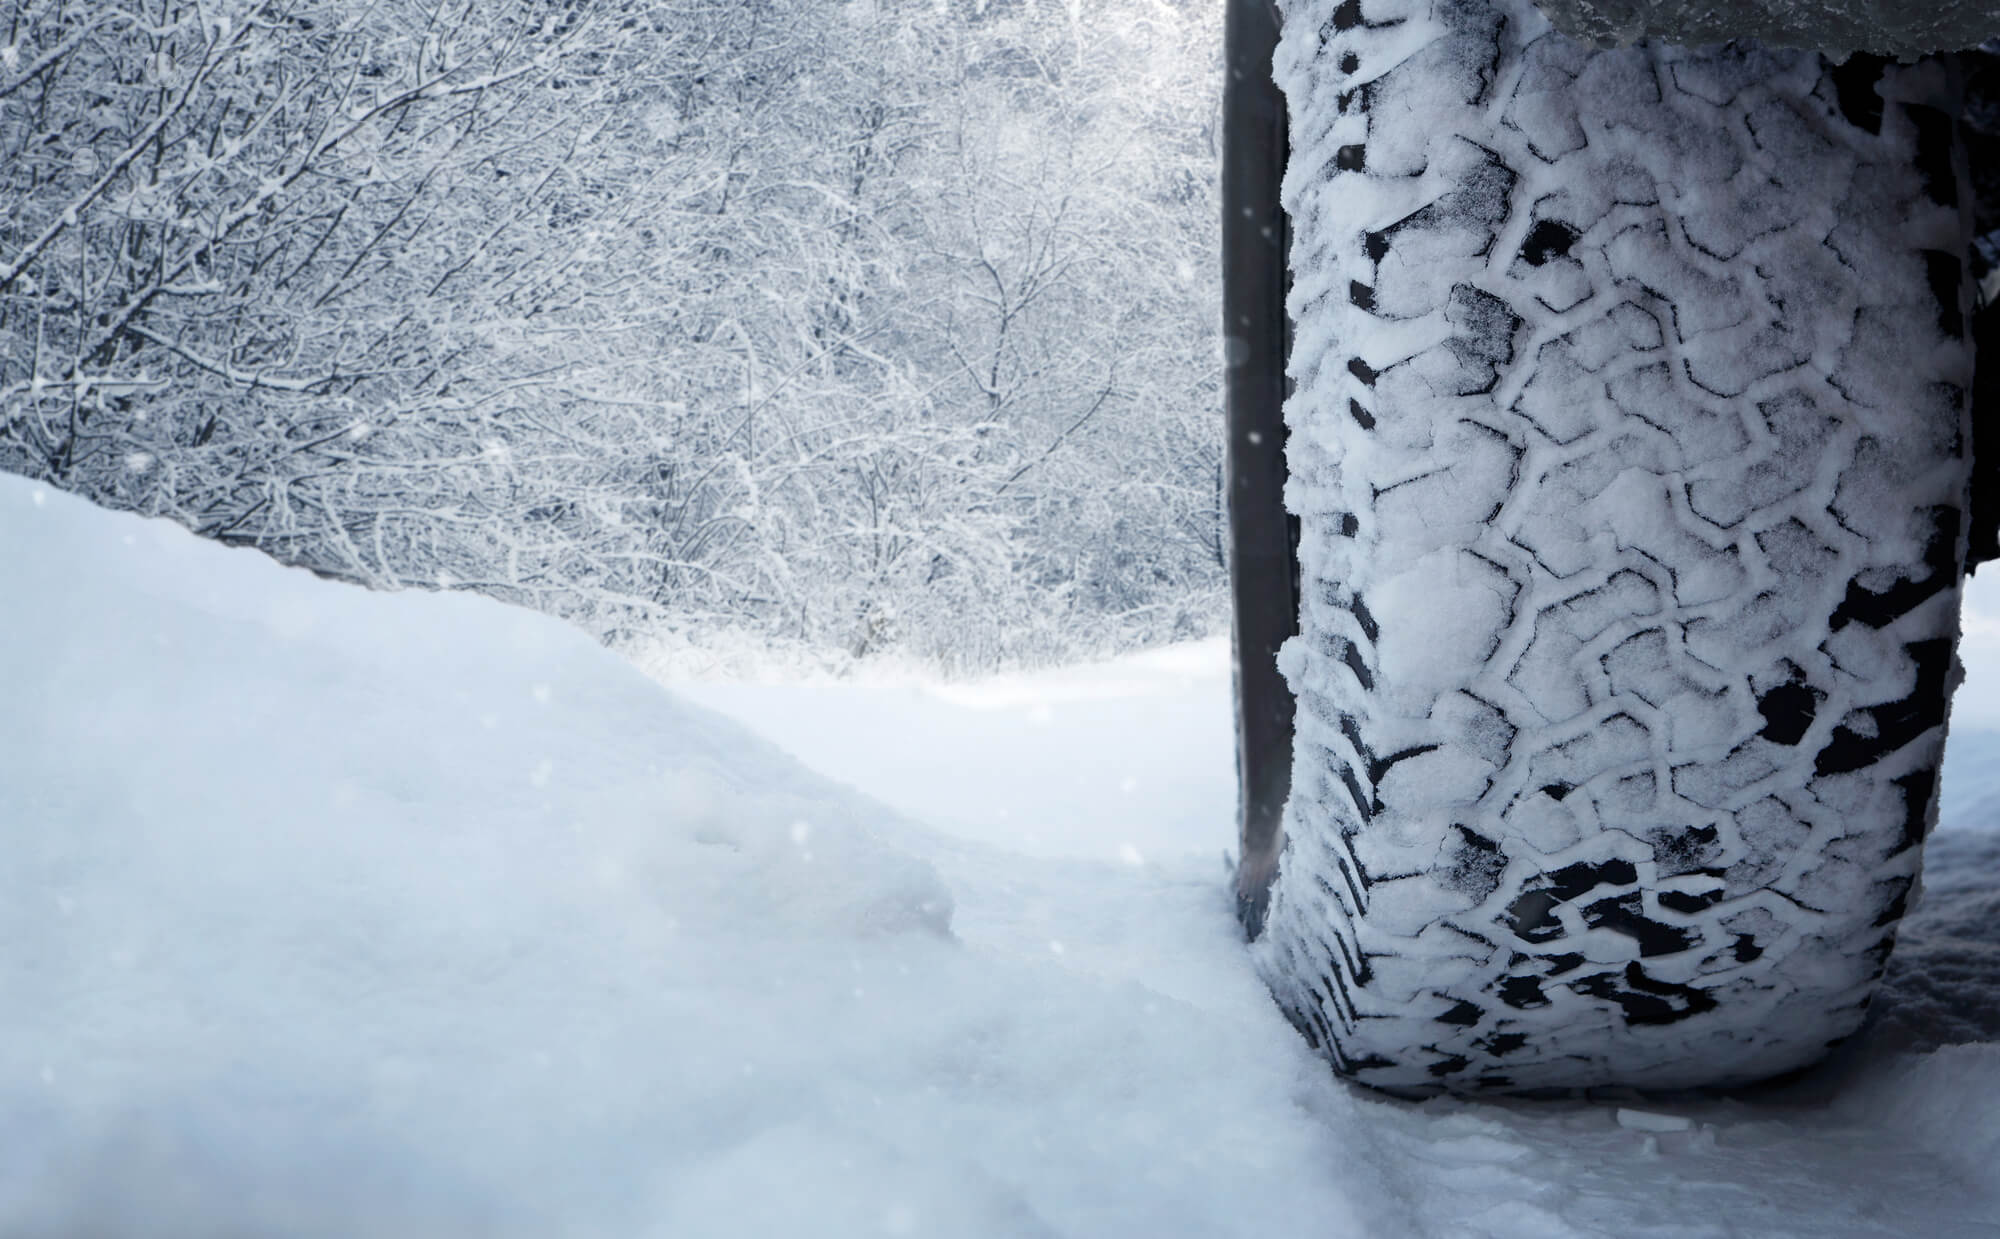 Close up of snow tires on snowy road